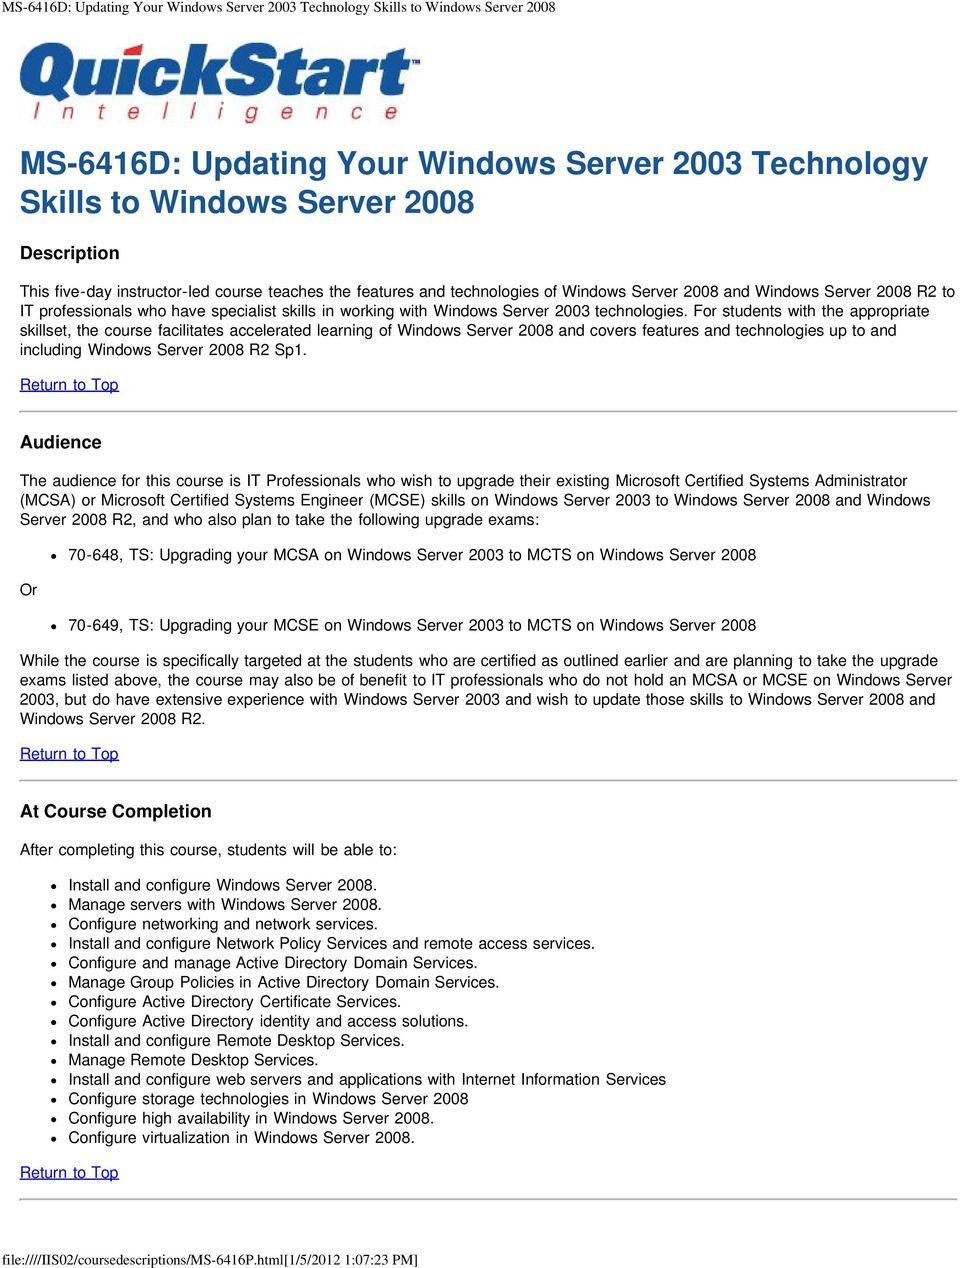 For students with the appropriate skillset, the course facilitates accelerated learning of Windows Server 2008 and covers features and technologies up to and including Windows Server 2008 R2 Sp1.